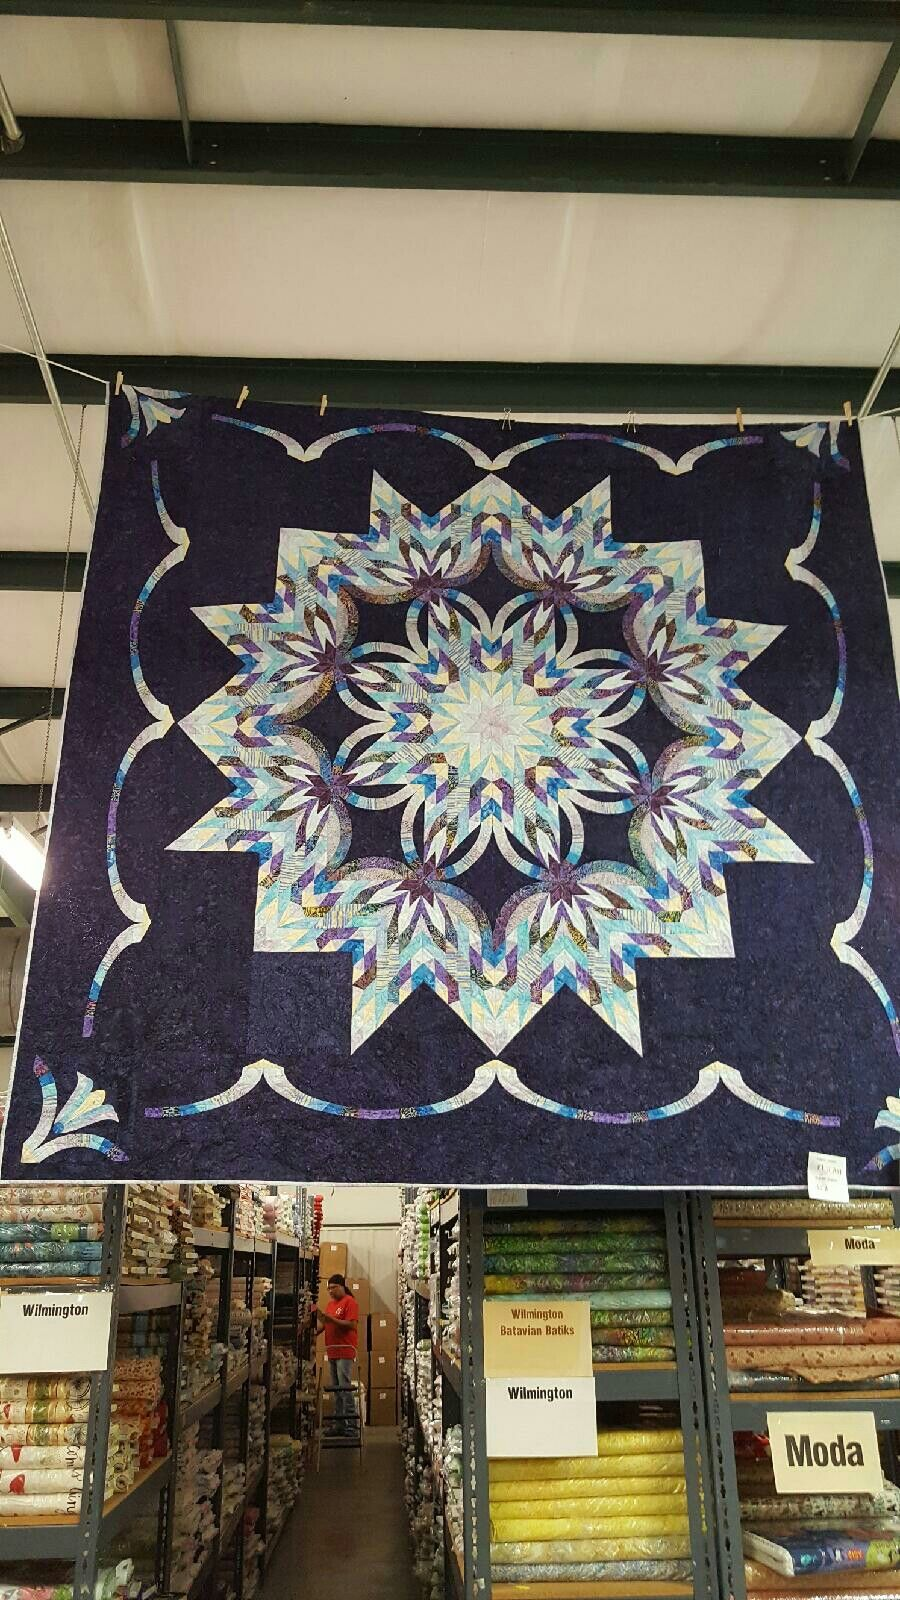 The Riviera star pattern I will start soon. Going to be a beautiful challenge